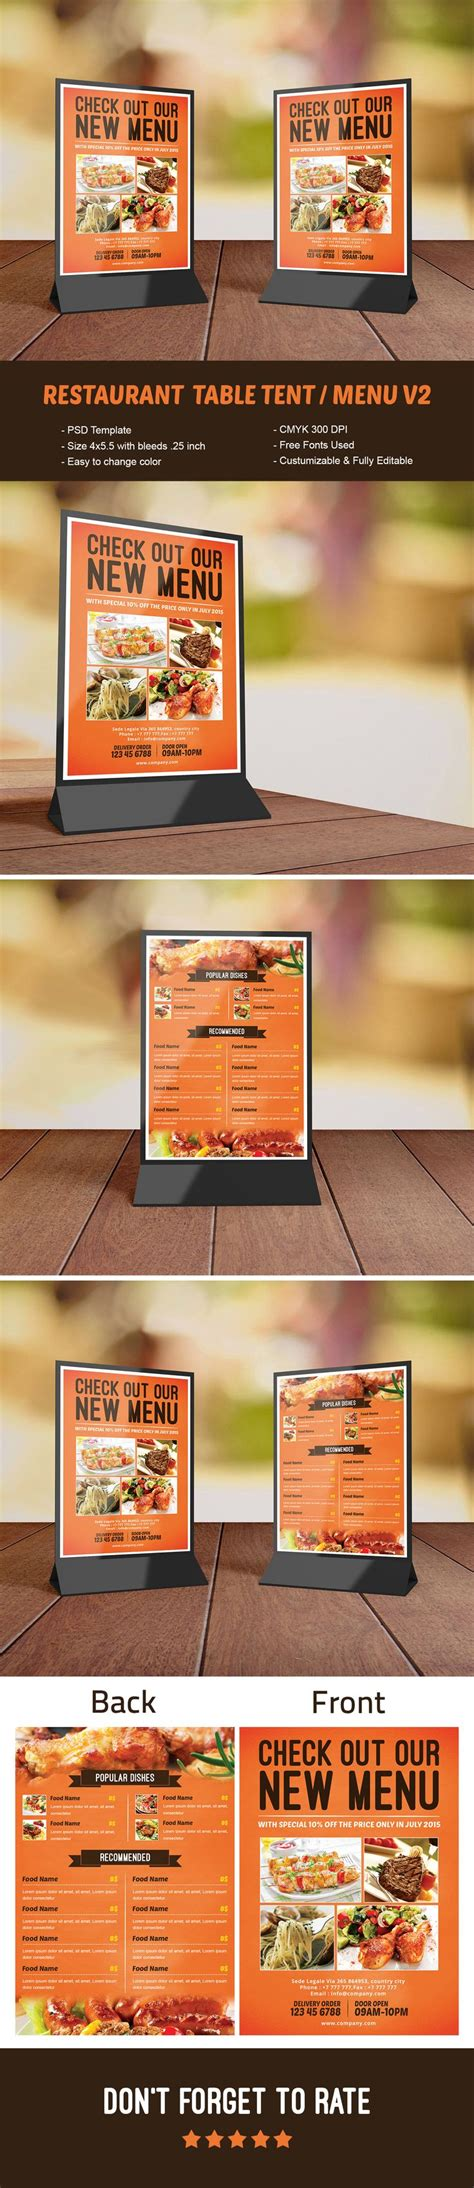 top 4 x 6 table tent template free template 2018